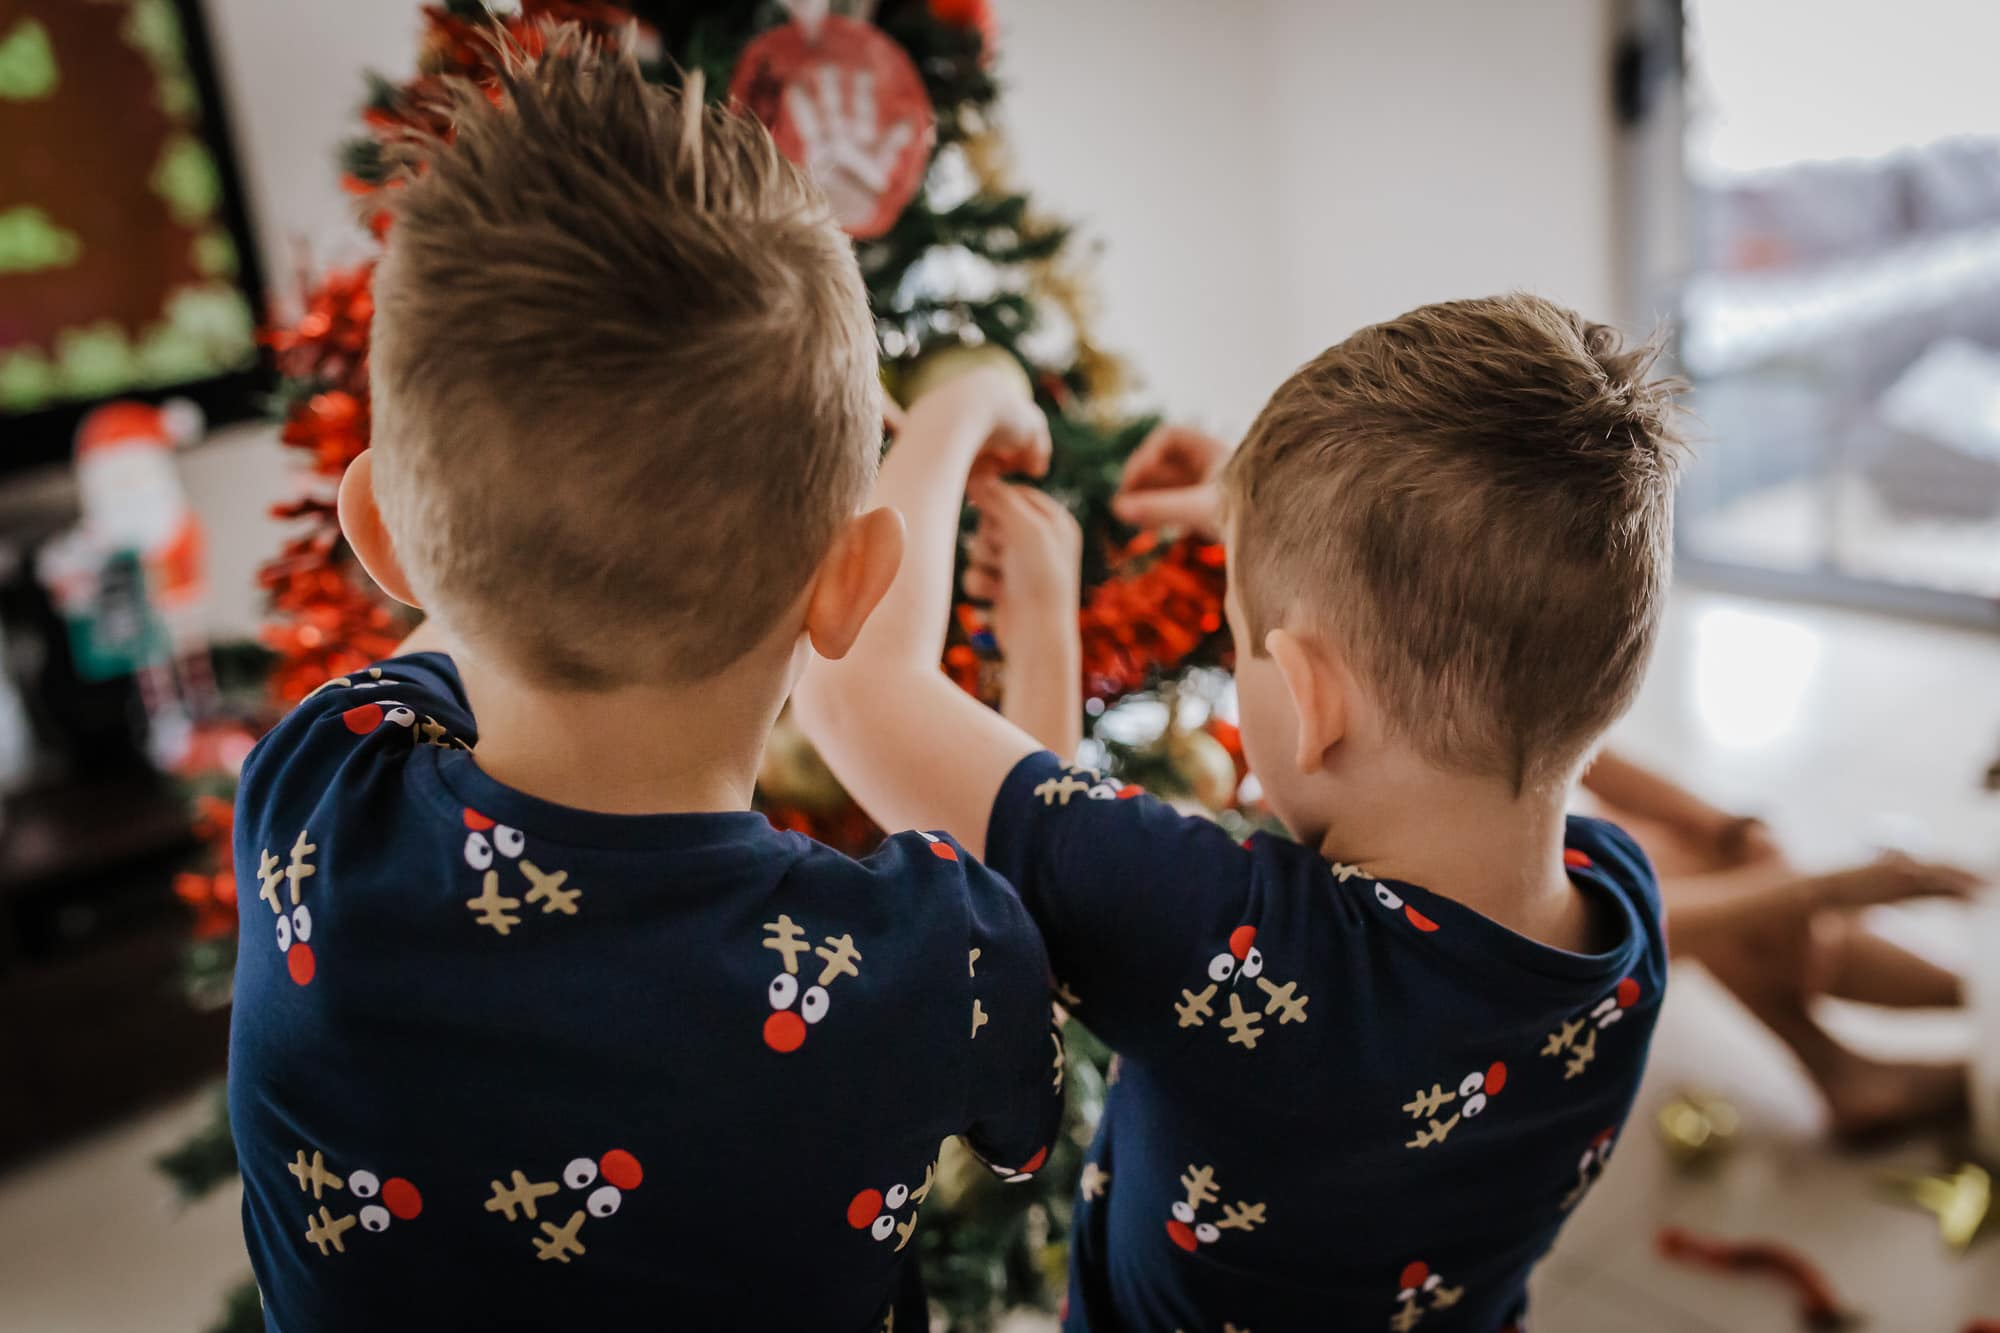 2 young brothers standing side by side as they hang Christmas decorations onto the xmas tree